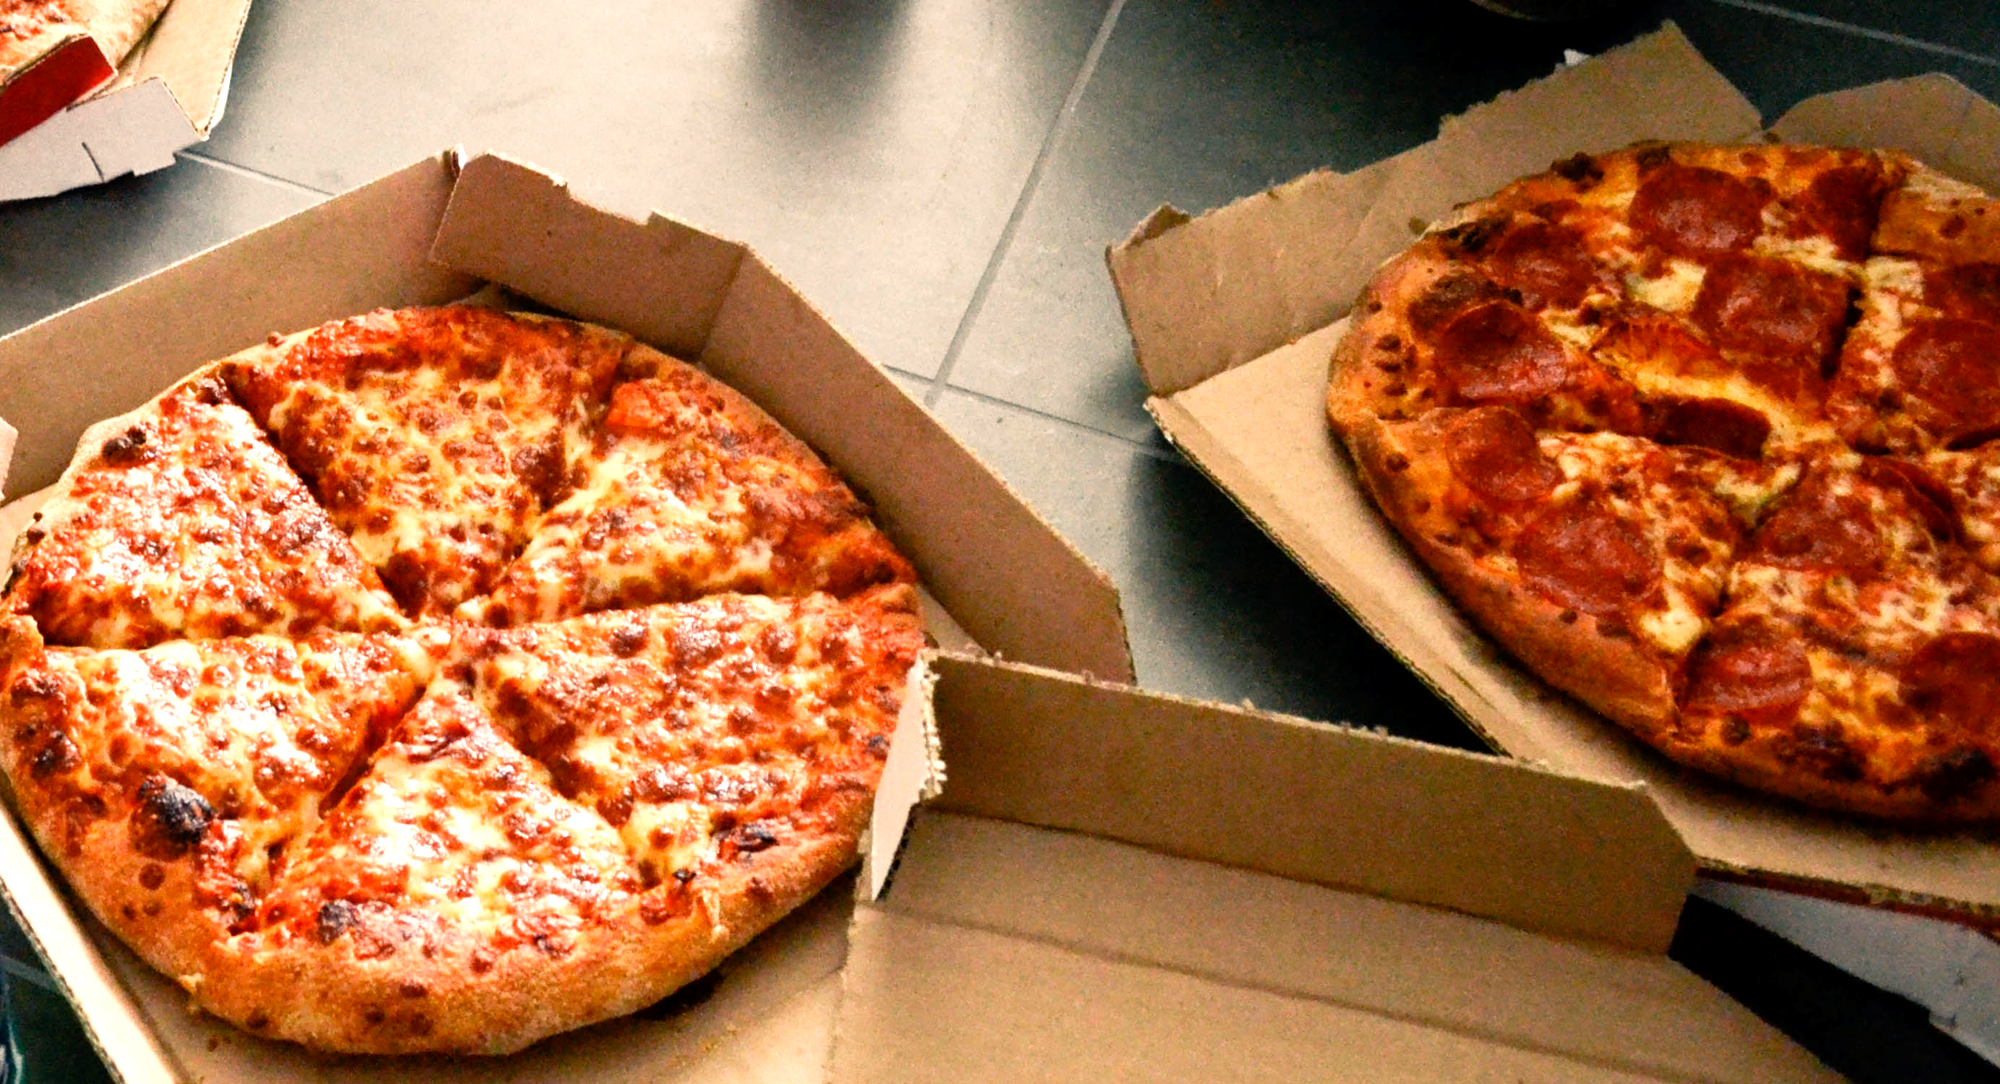 This pizza box folding hack is blowing the internet's mind